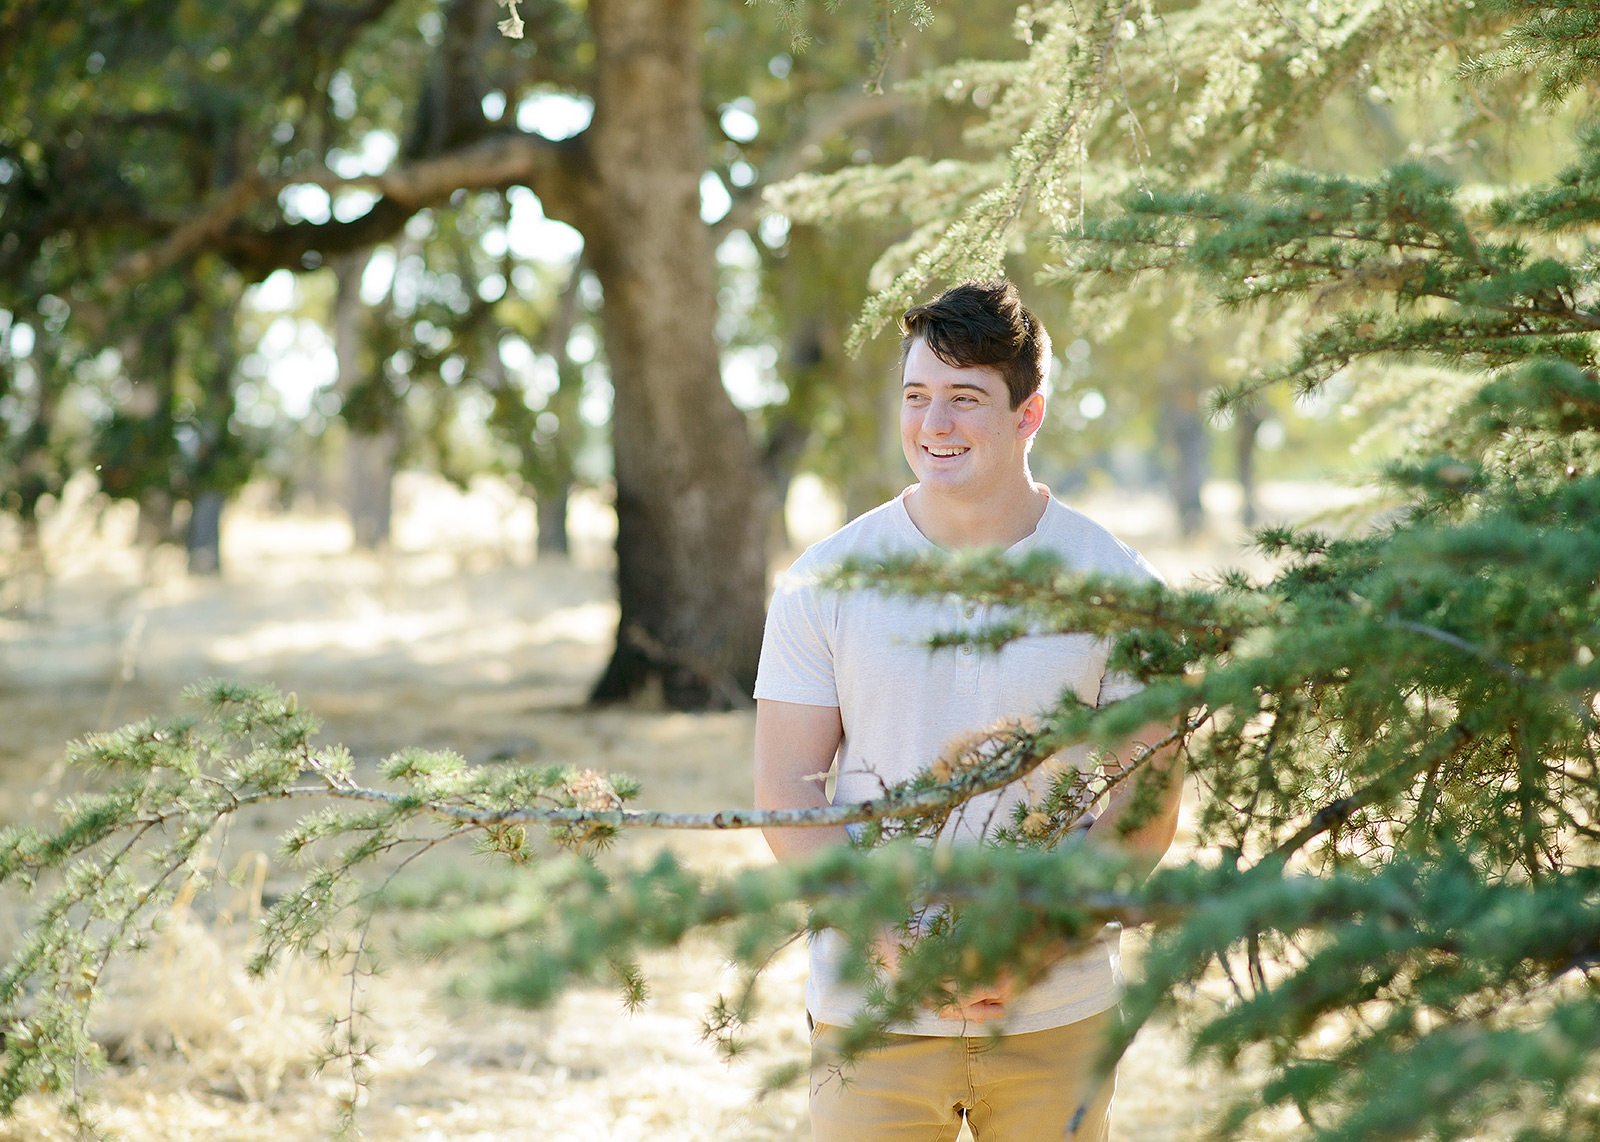 Teenage male smiling in between trees in Folsom